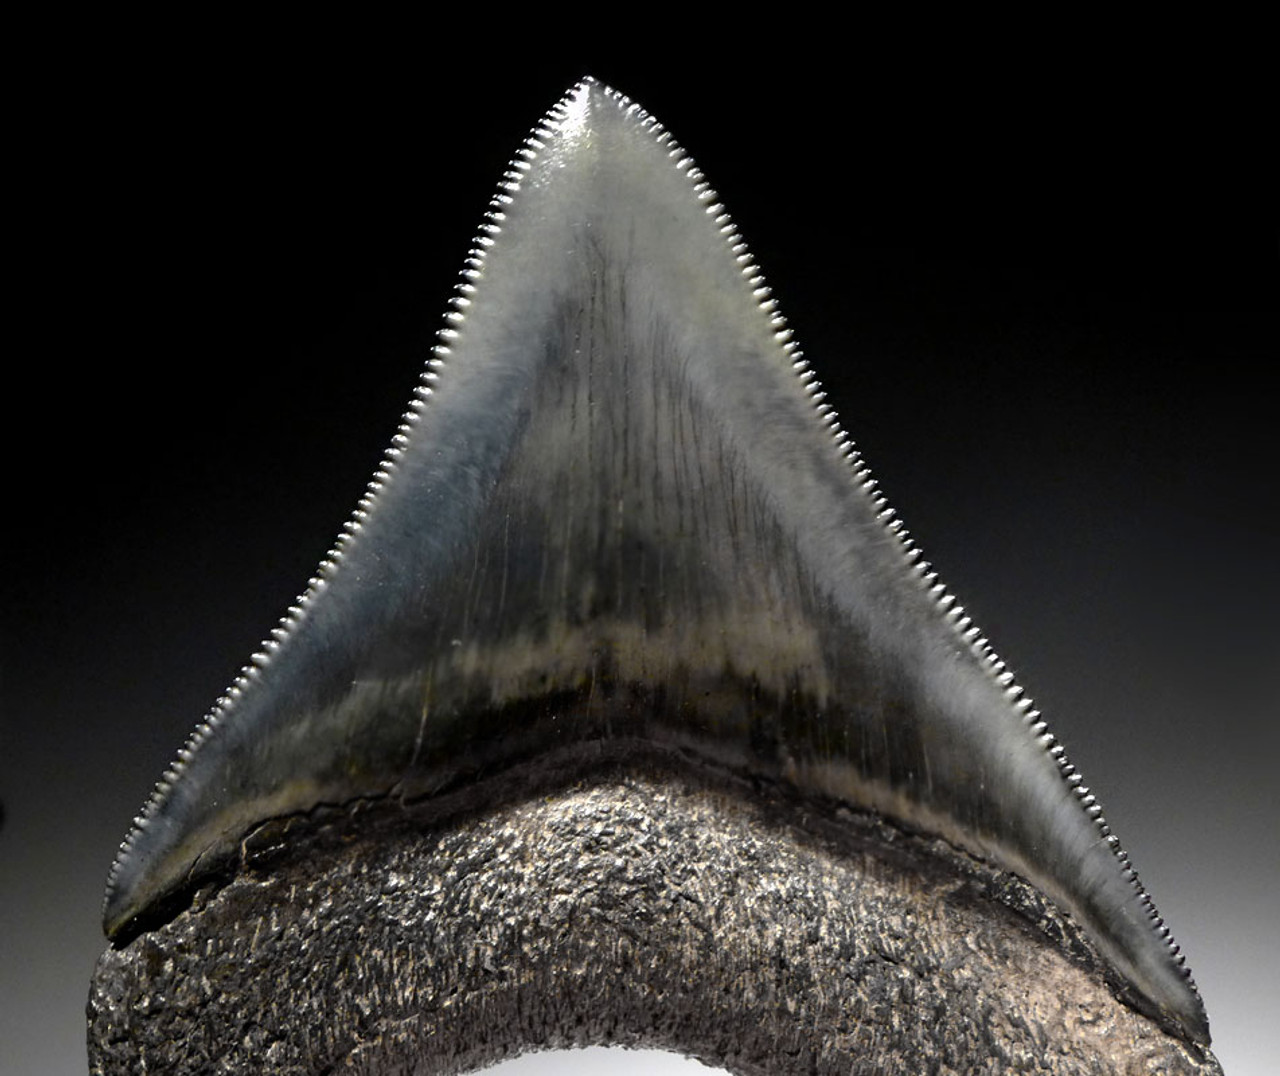 POSTERIOR MEGALODON SHARK TOOTH FINEST GRADE WITH CHARCOAL AND BLUE ENAMEL *SH6-415